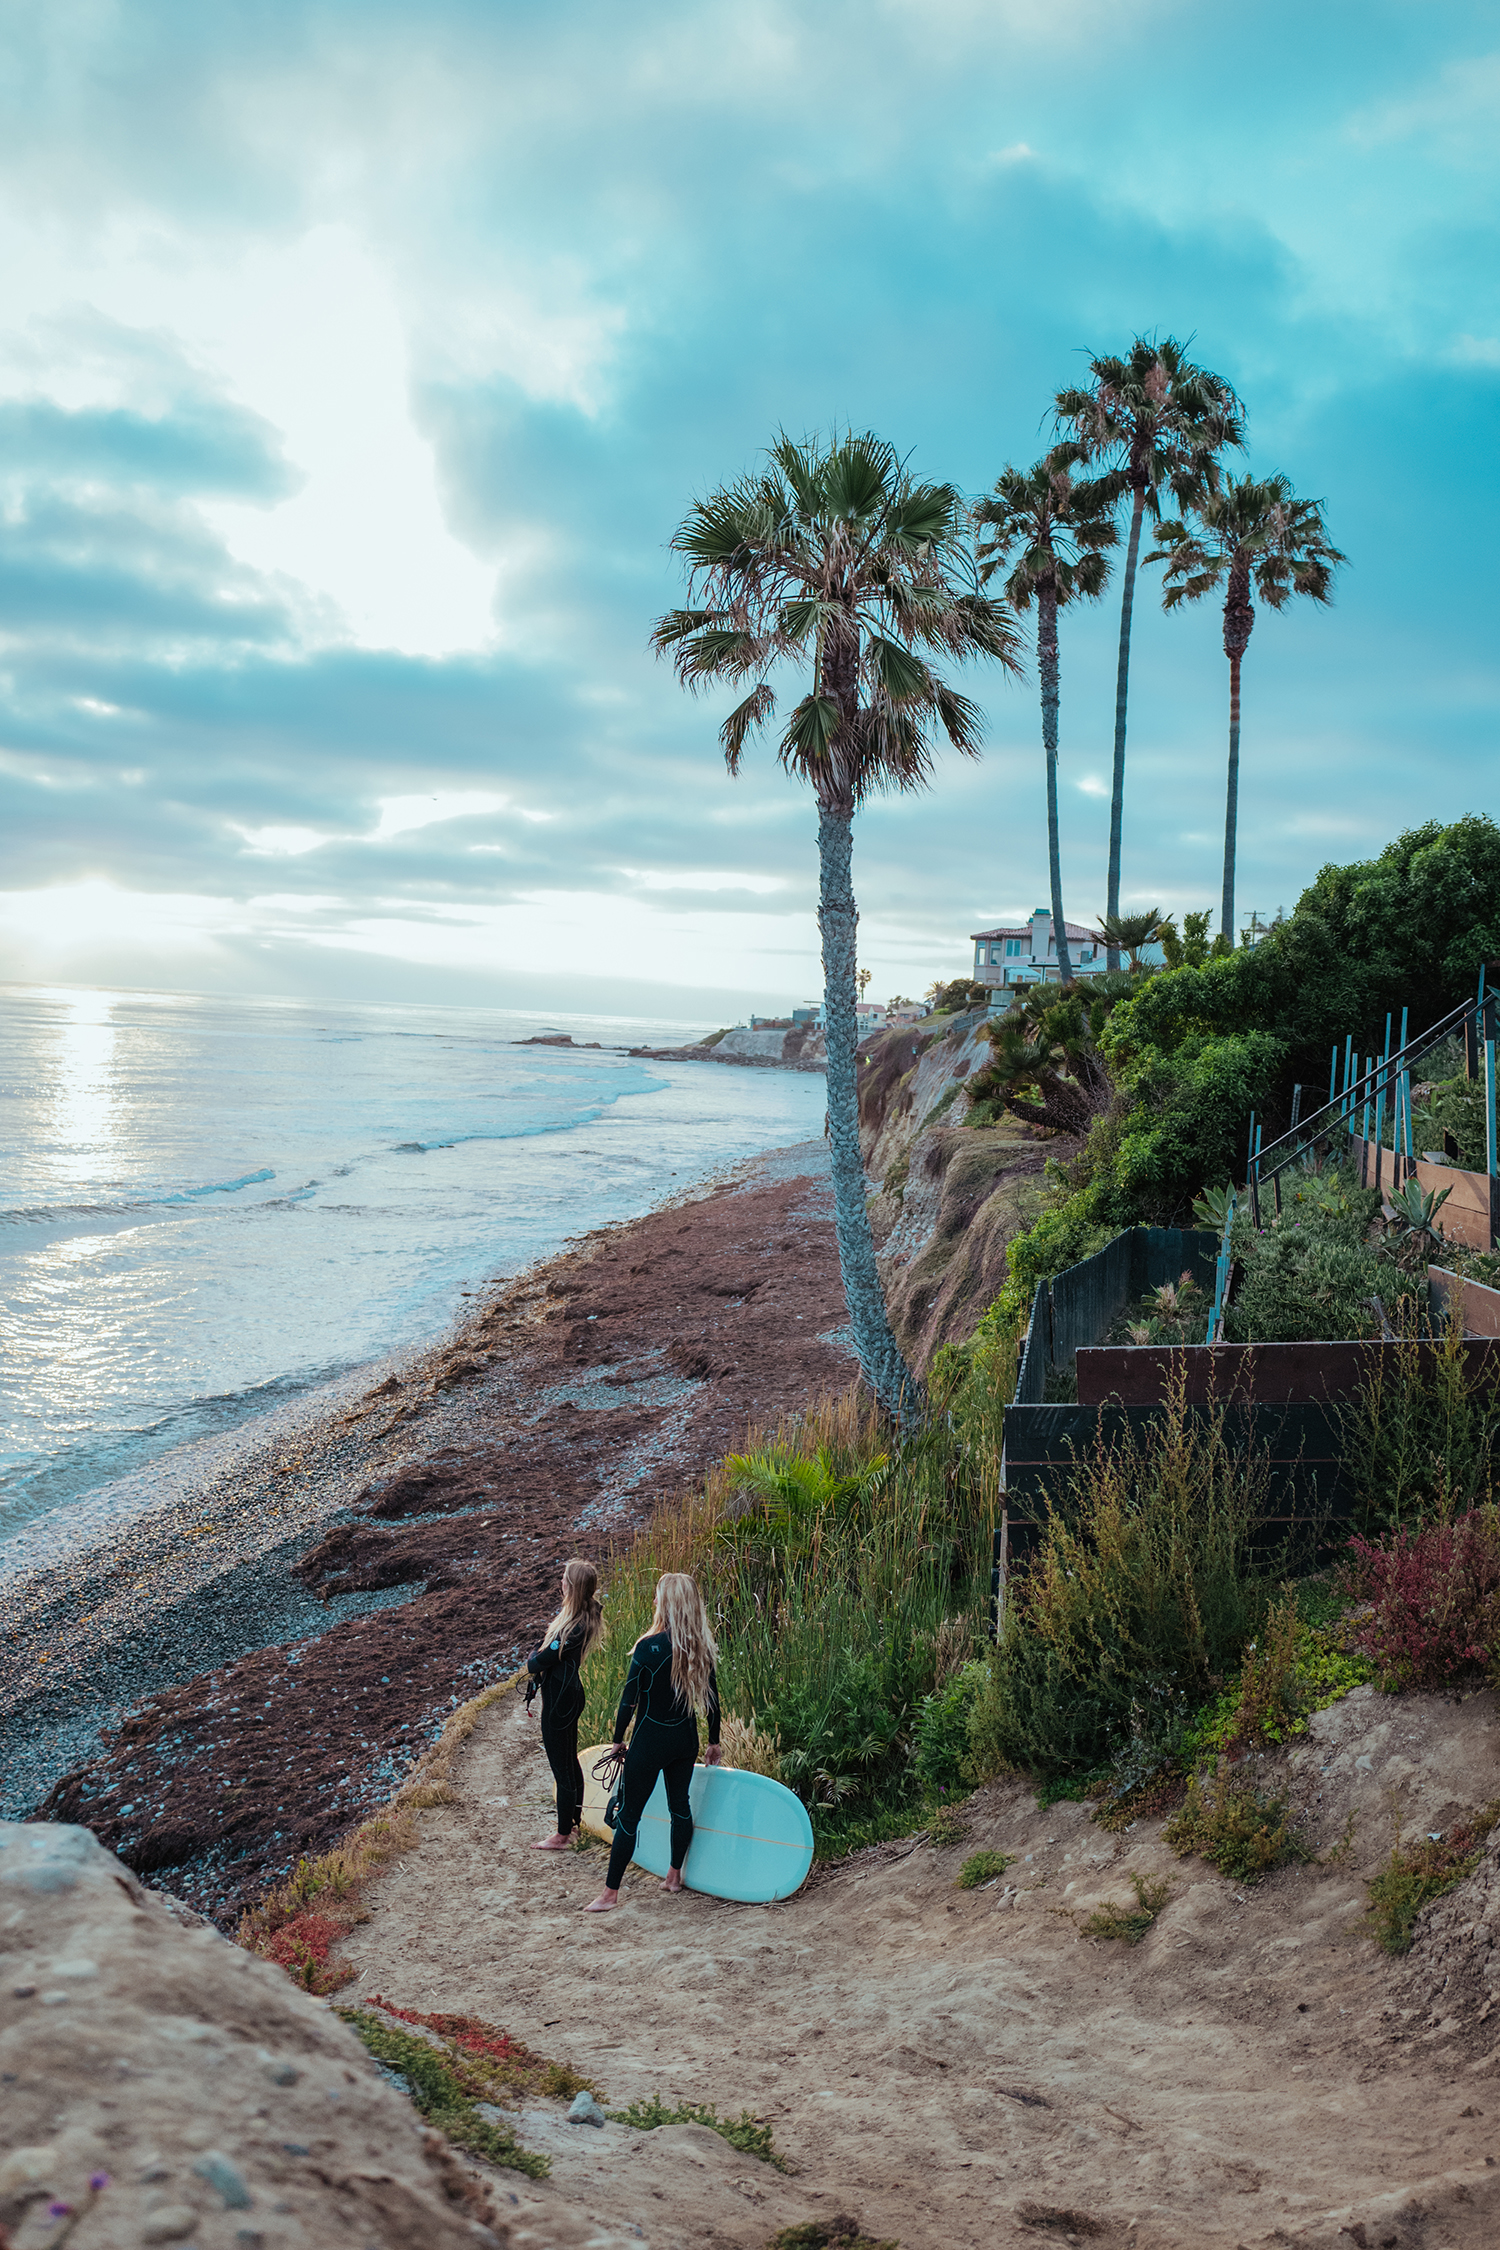 Beach in san diego with two people with surf boards